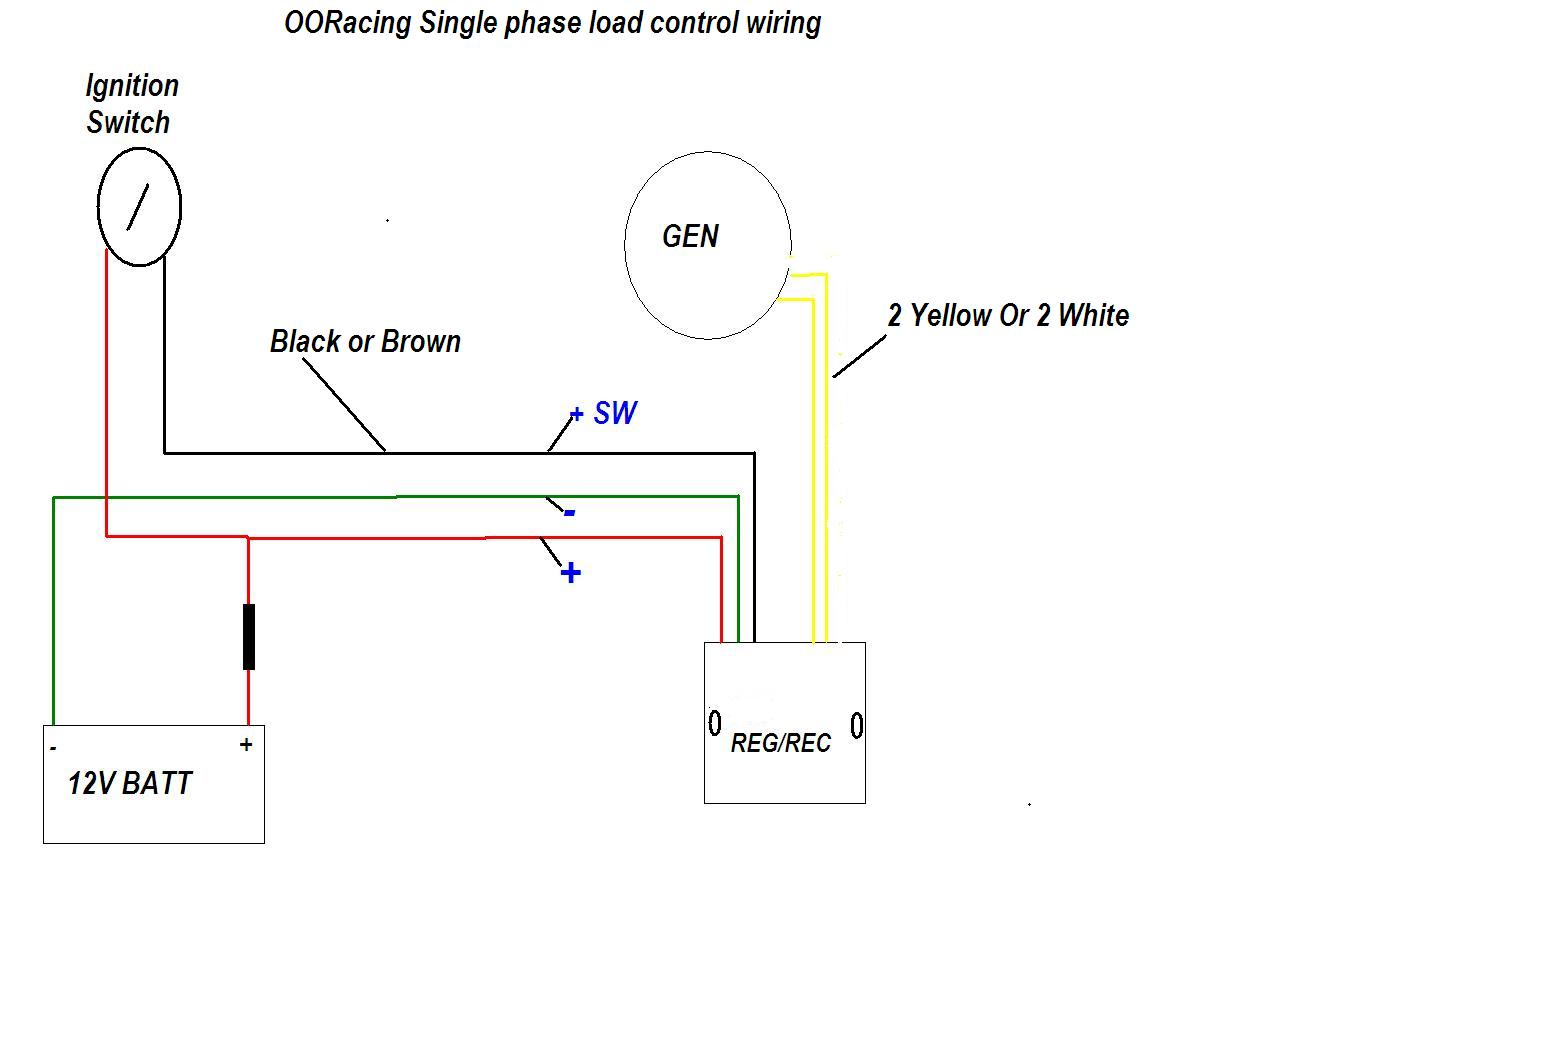 Single_phase_50W_Gen_wiring pit bike wiring diagram diagram wiring diagrams for diy car repairs lifan 125cc pit bike wiring diagram at n-0.co